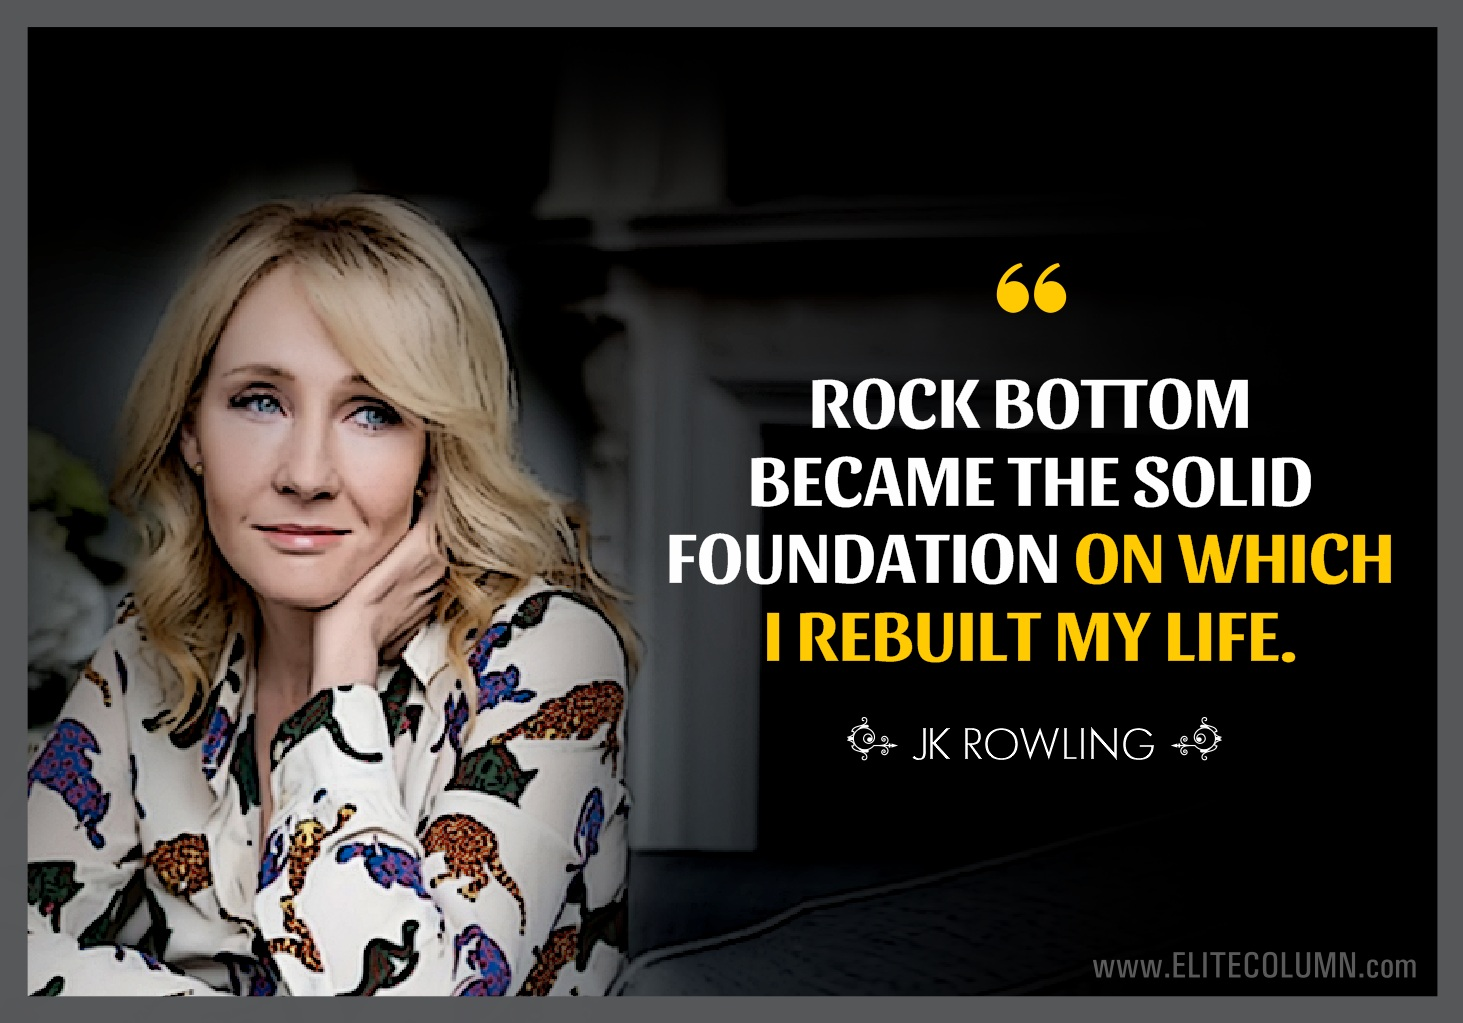 JK Rowling Quotes (10)